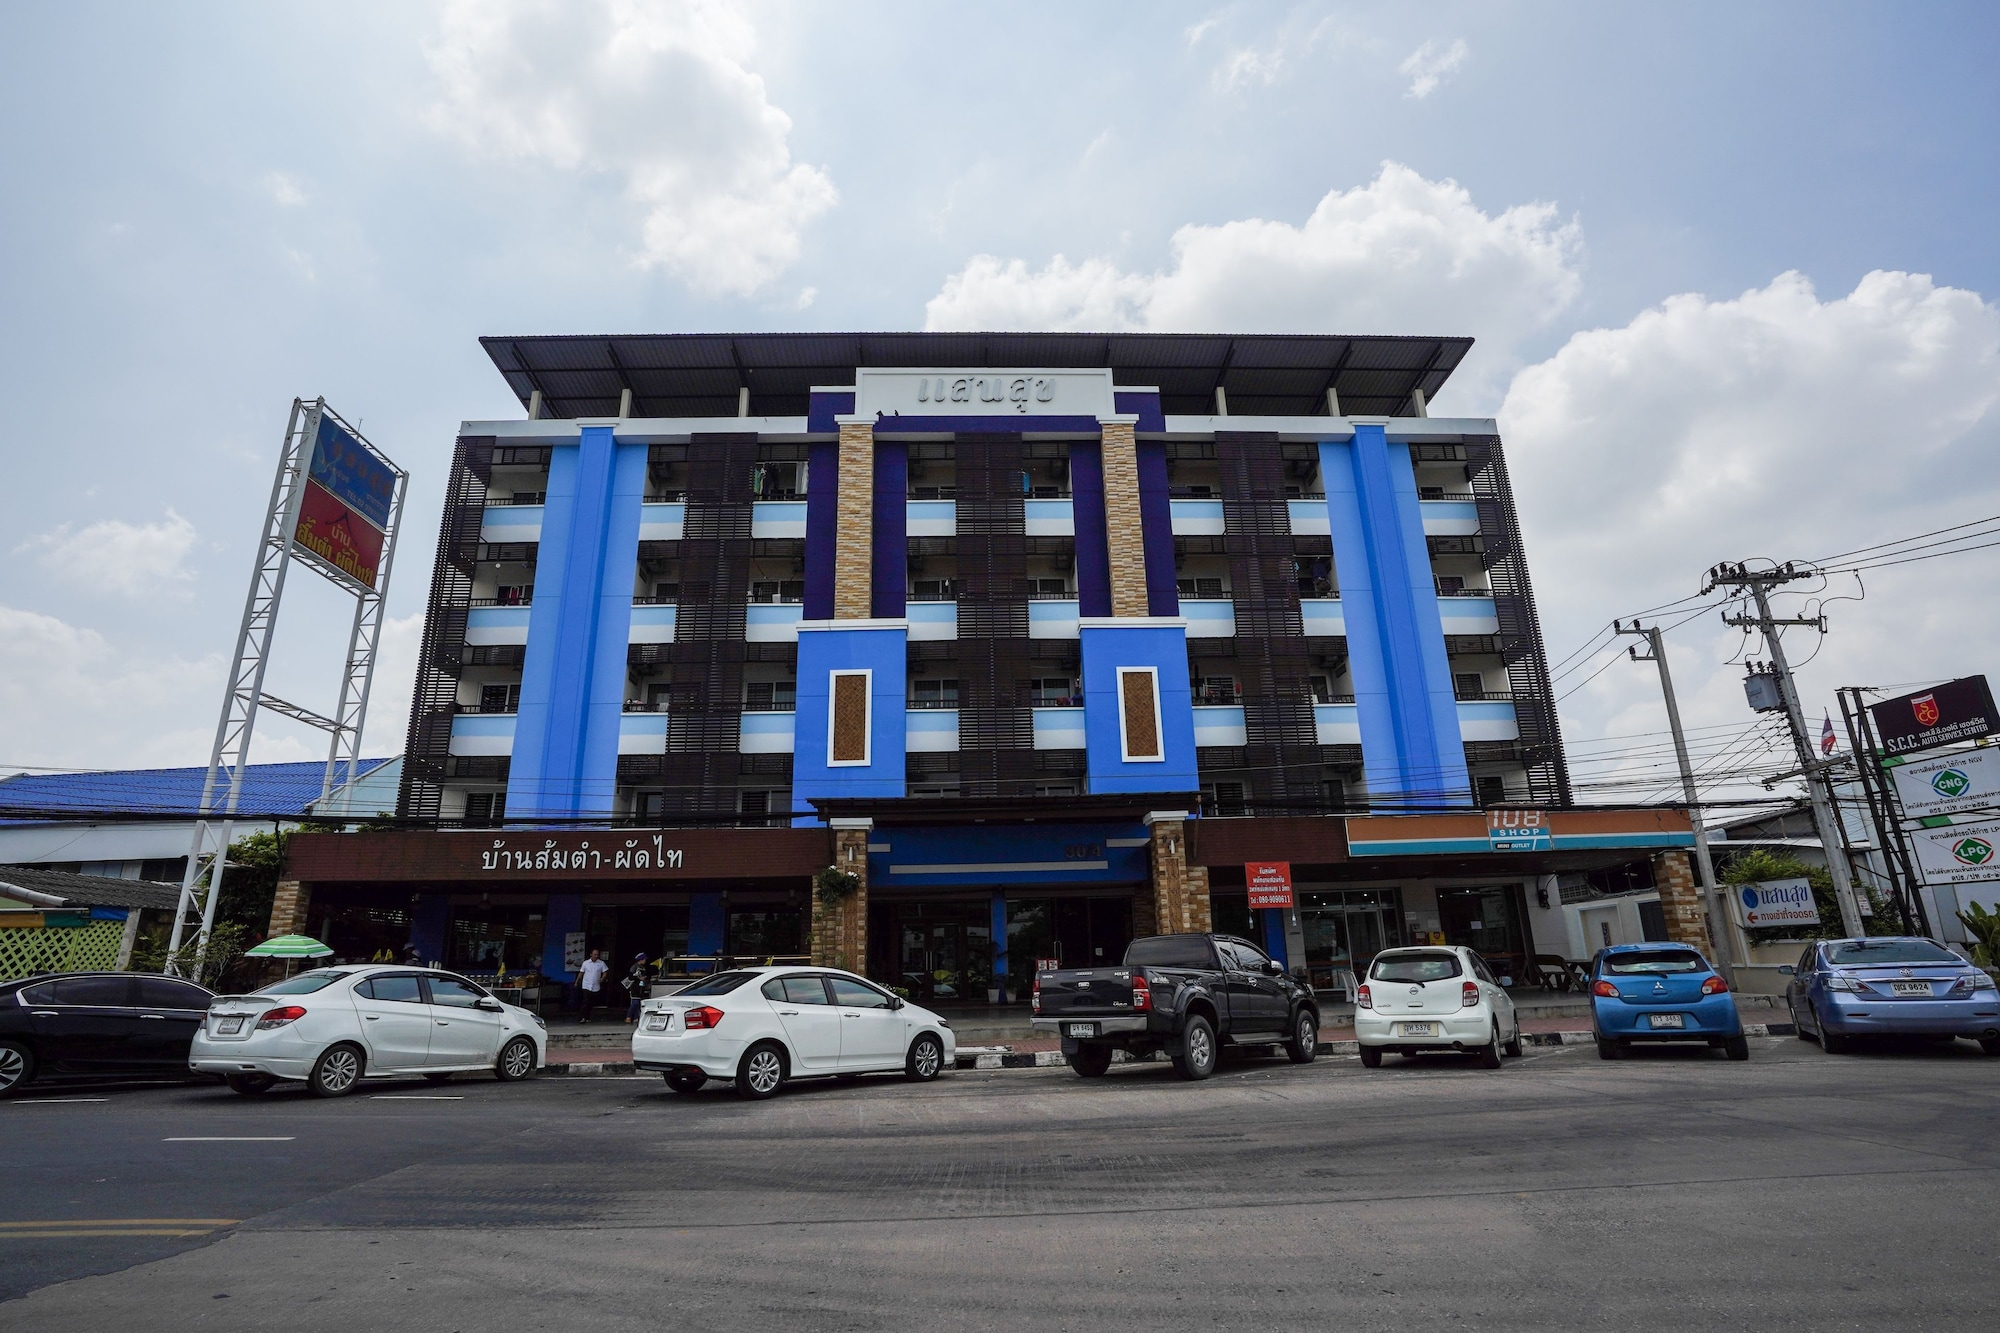 Sansuk Apartment, Muang Pathum Thani